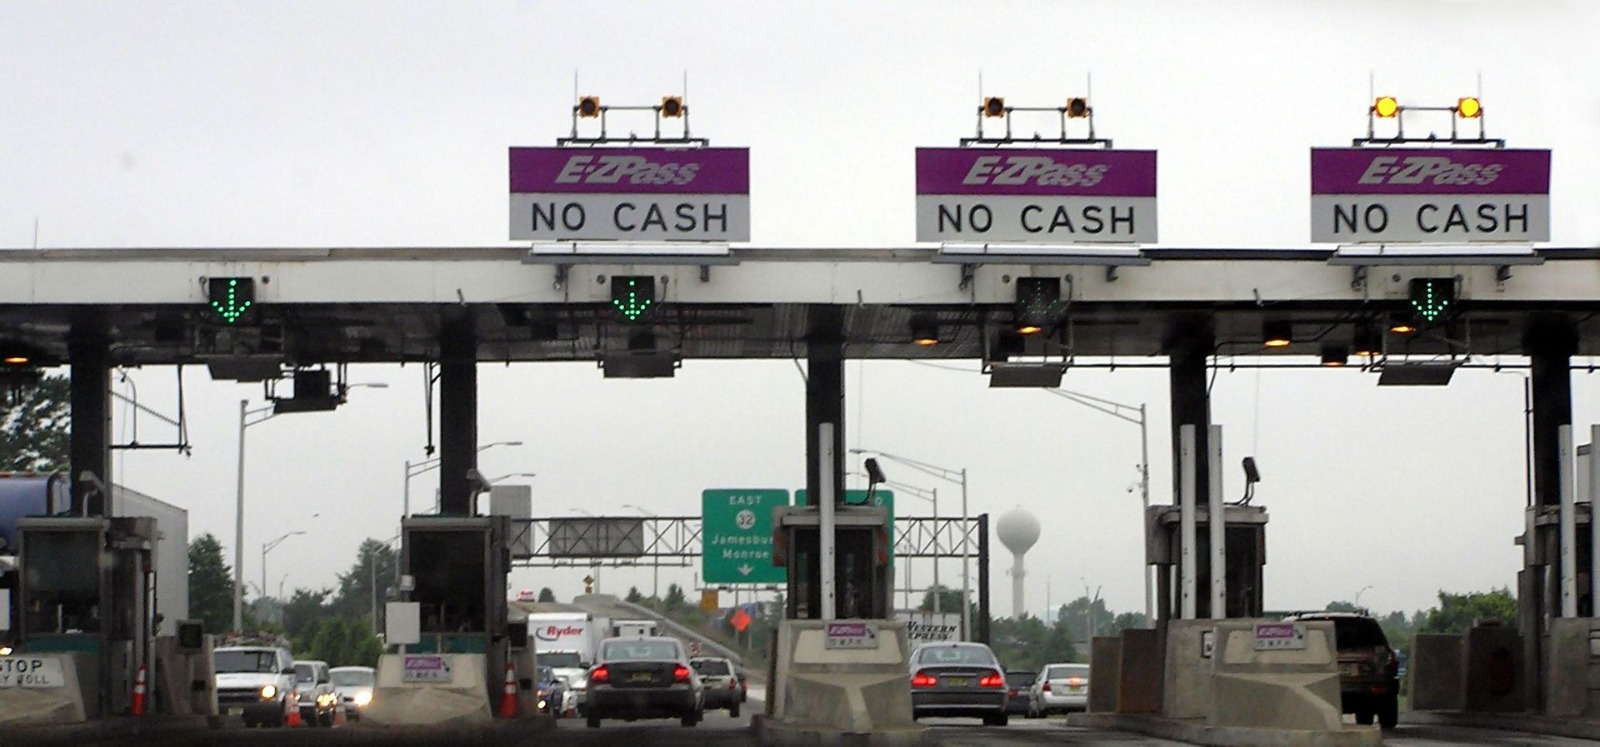 Toll Increase for NJ Highways Starts Today